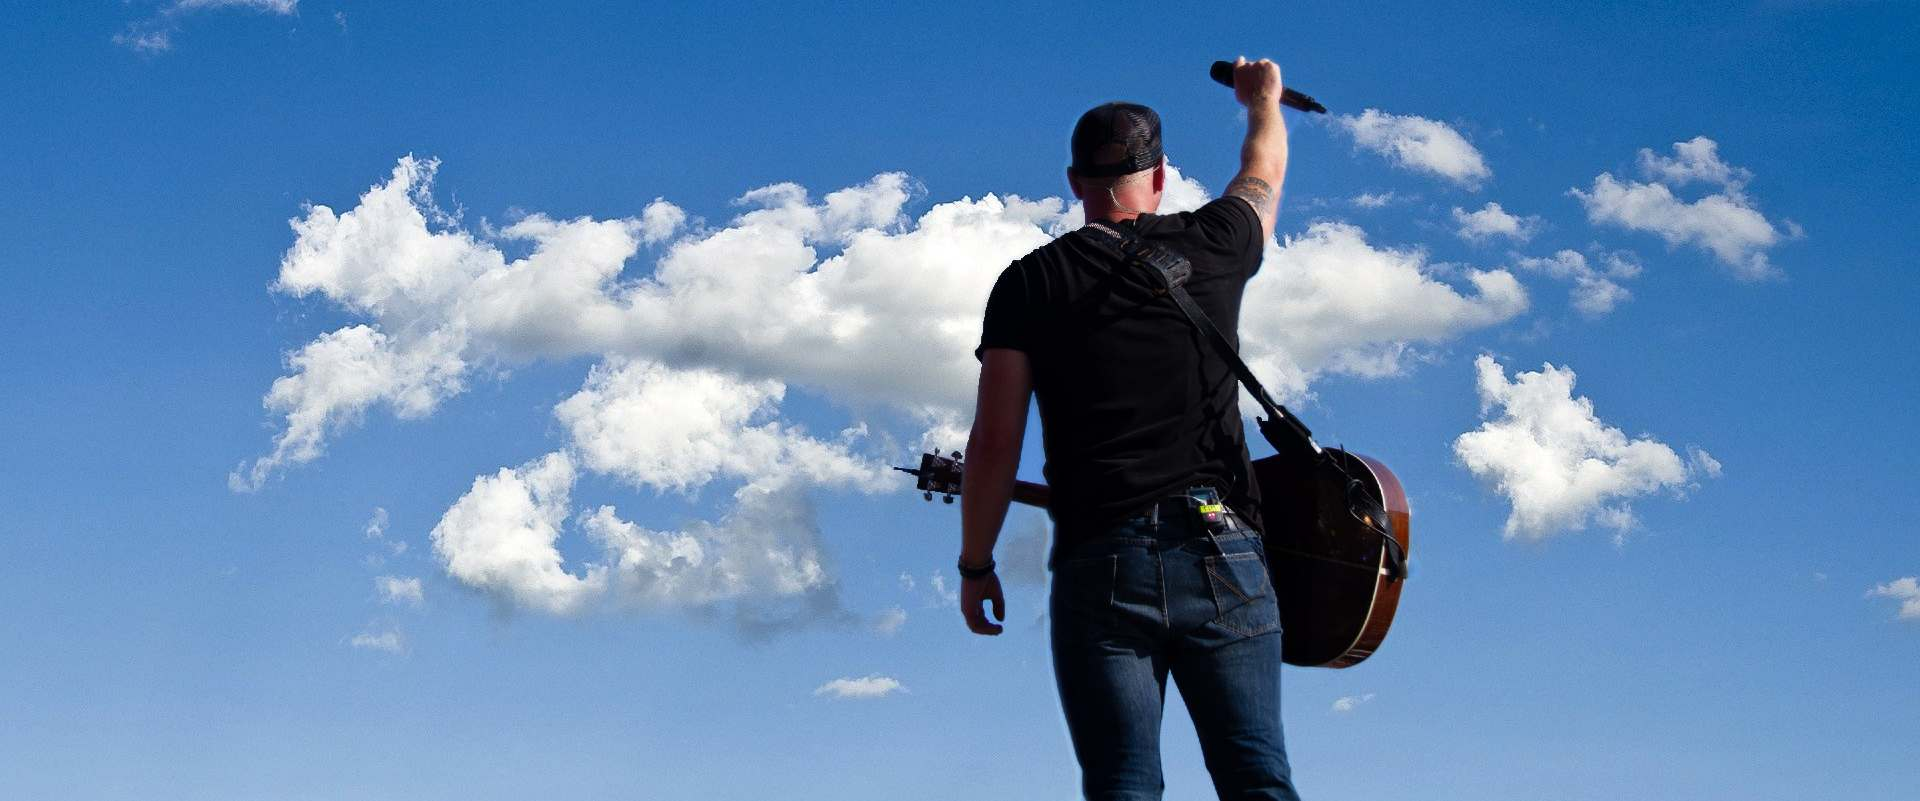 Tim Hicks on stage in front of clouds